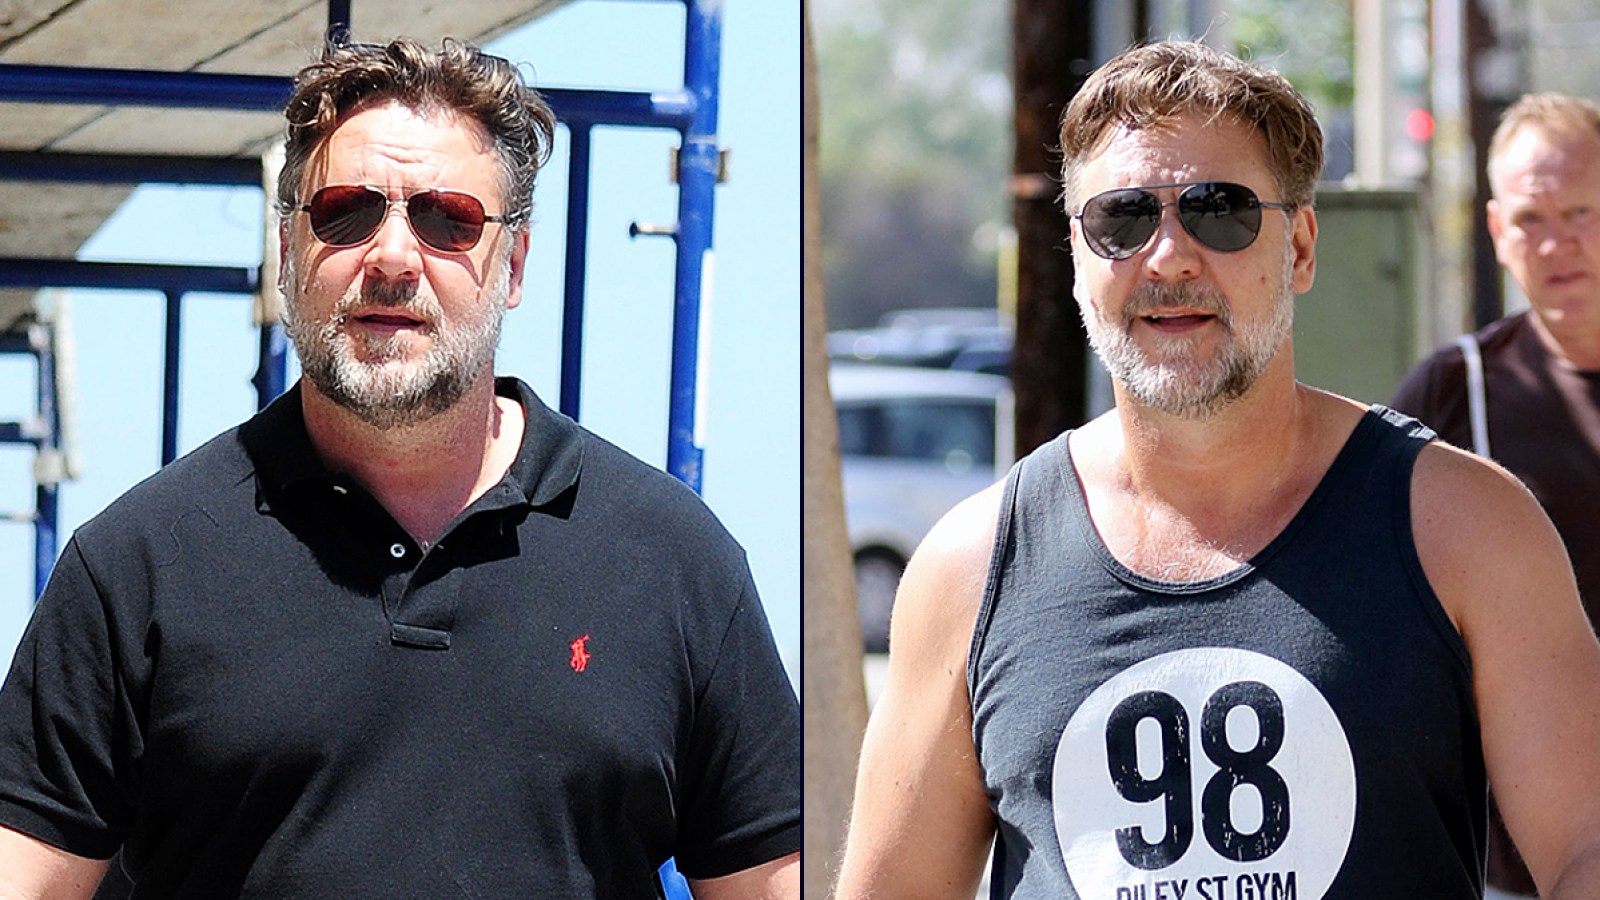 a36eeaa0 Russell Crowe Lost 52 Pounds: See His Dramatically Slimmer Look